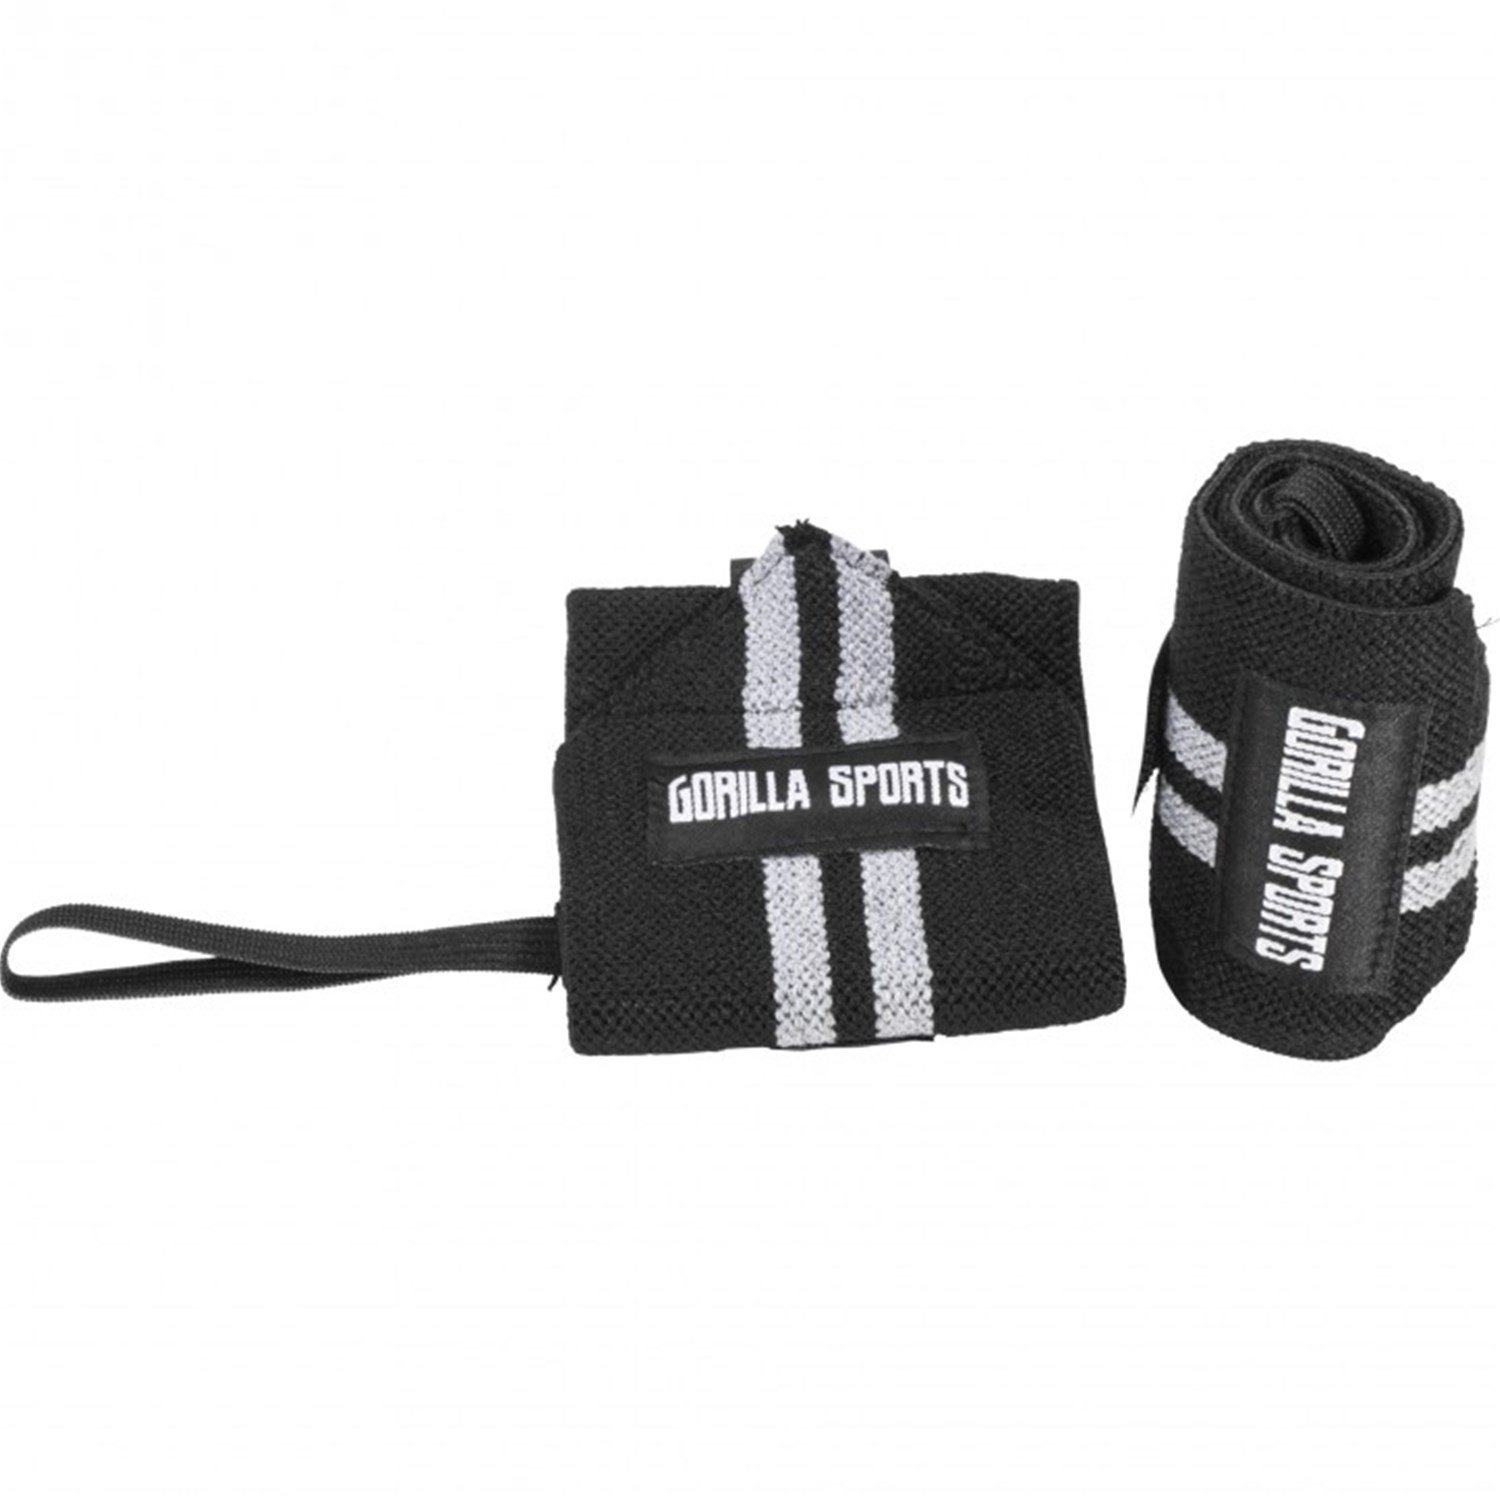 Gorilla Sports Wrist-Wraps - 6